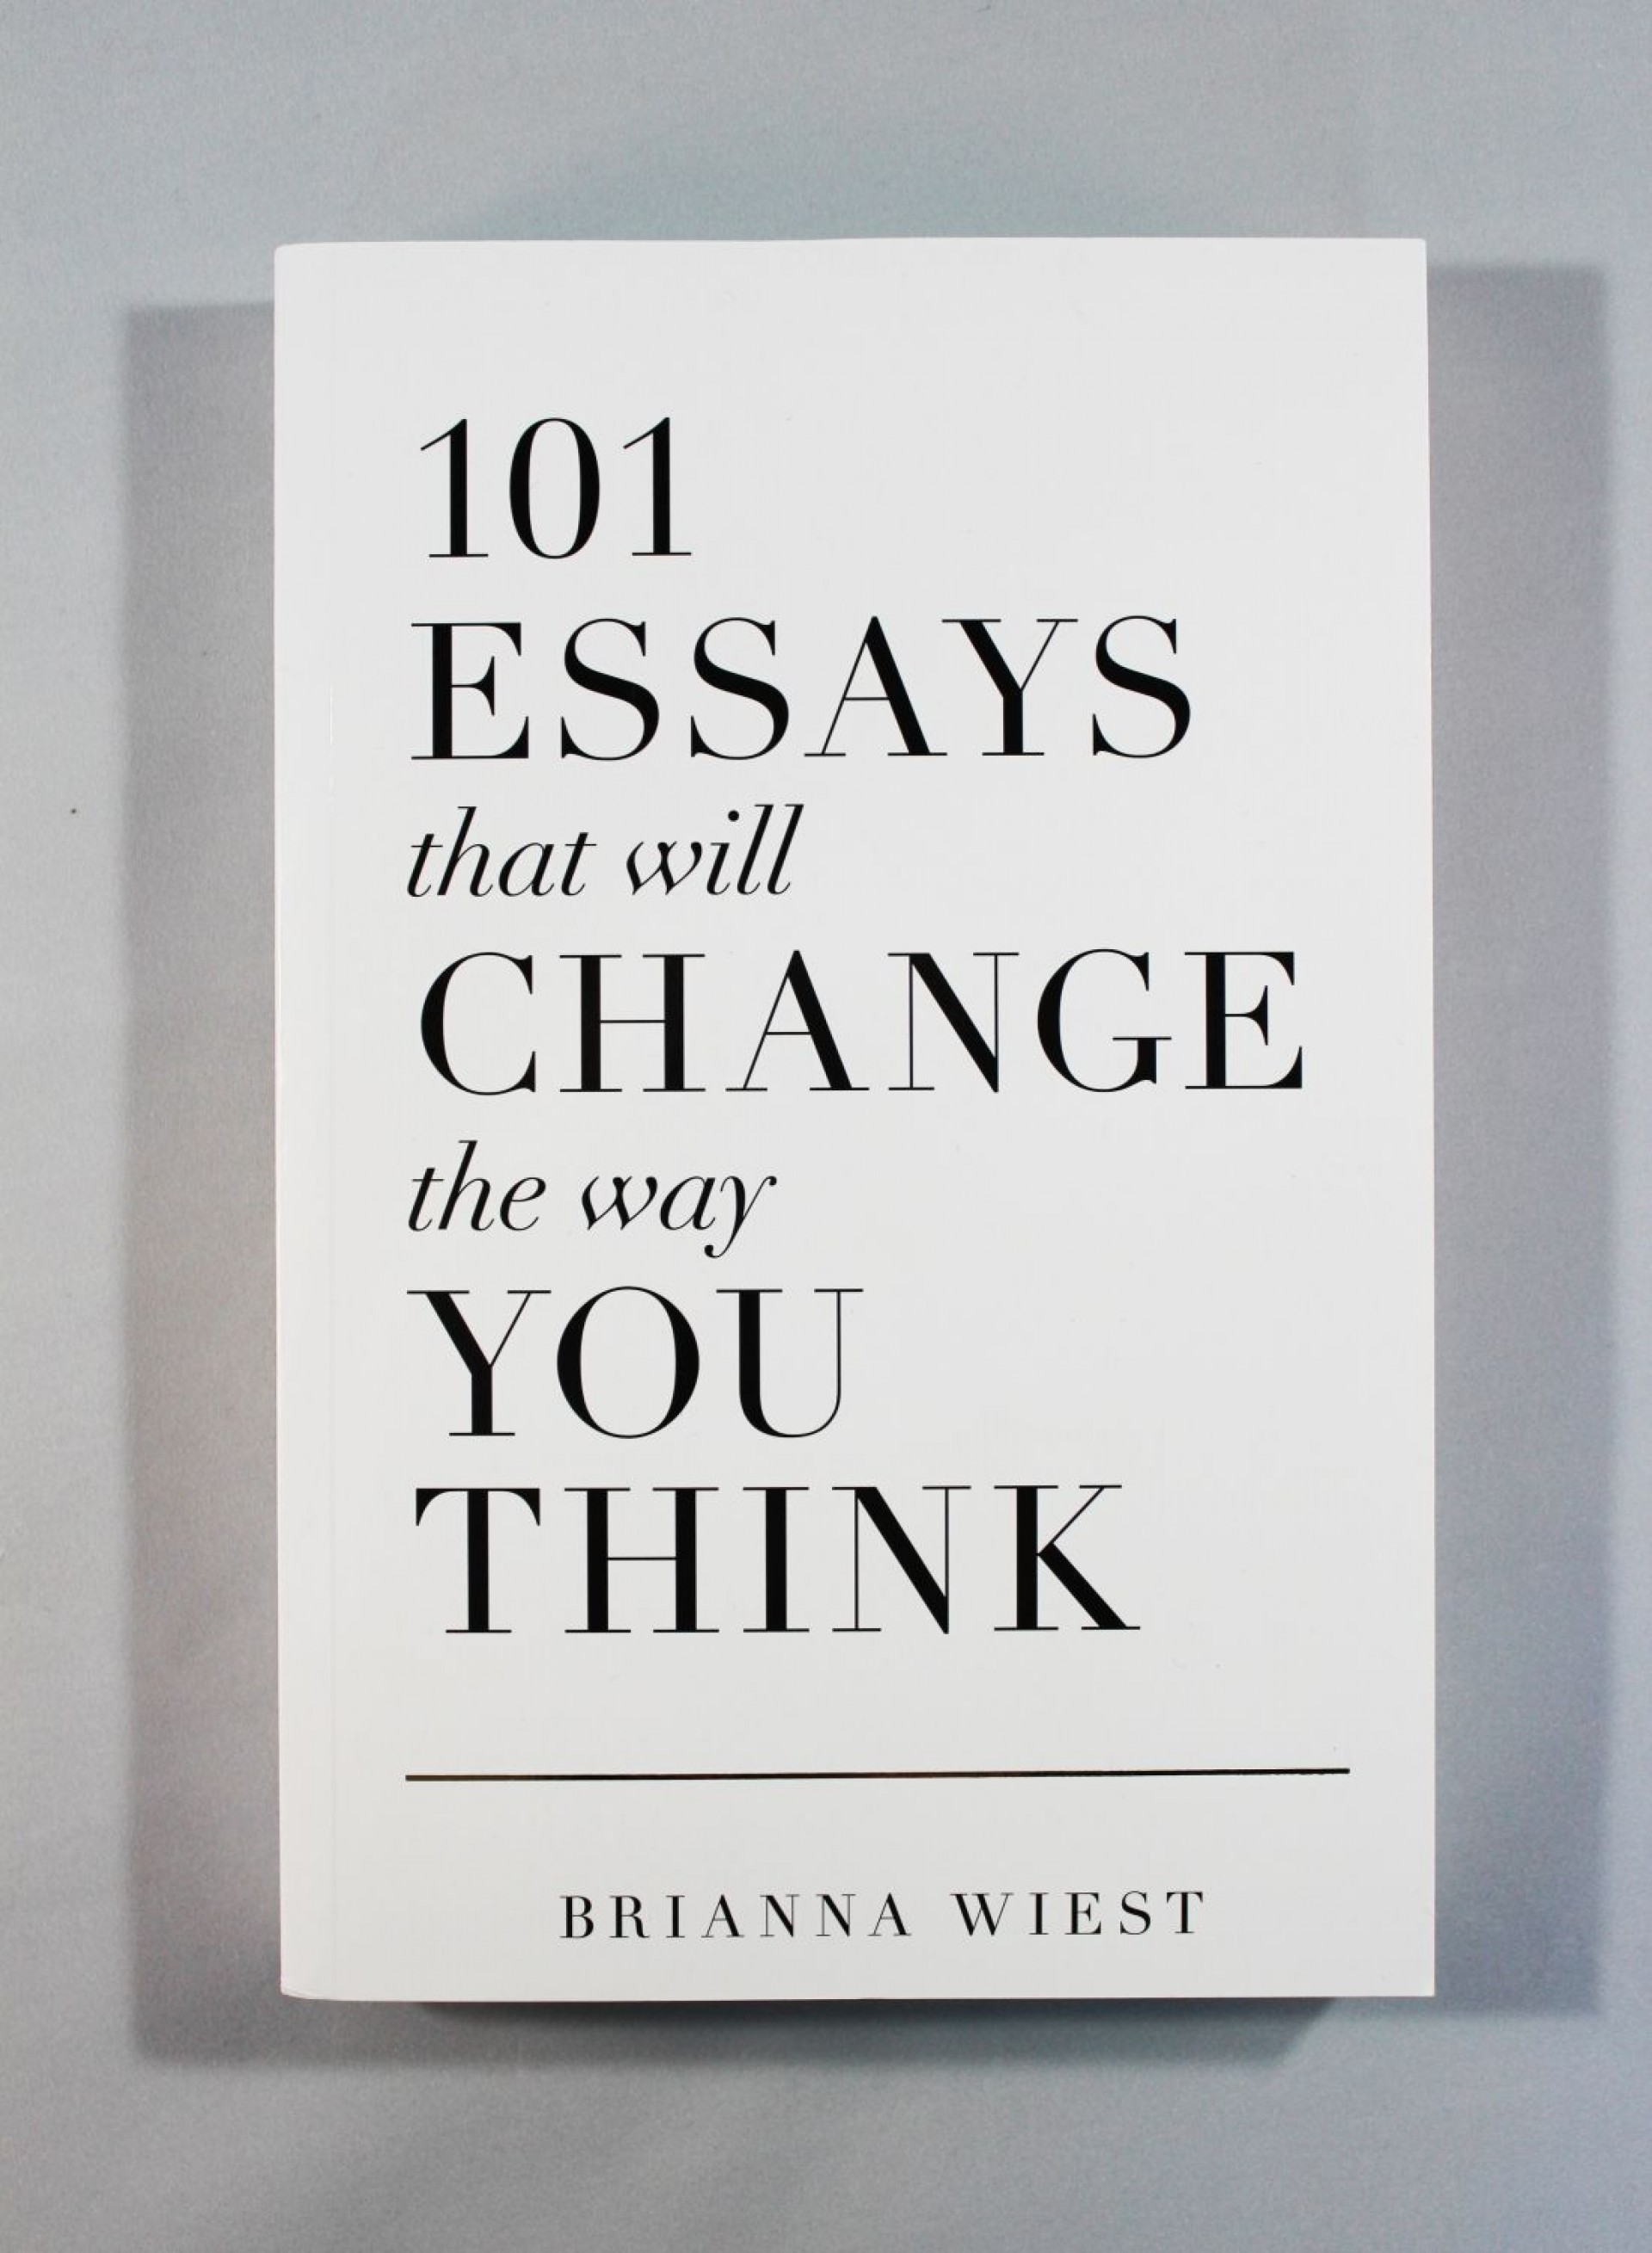 007 Essay Example Essays That Will Change The Way You Think Unusual 101 Book Depository Barnes And Noble Review 1920